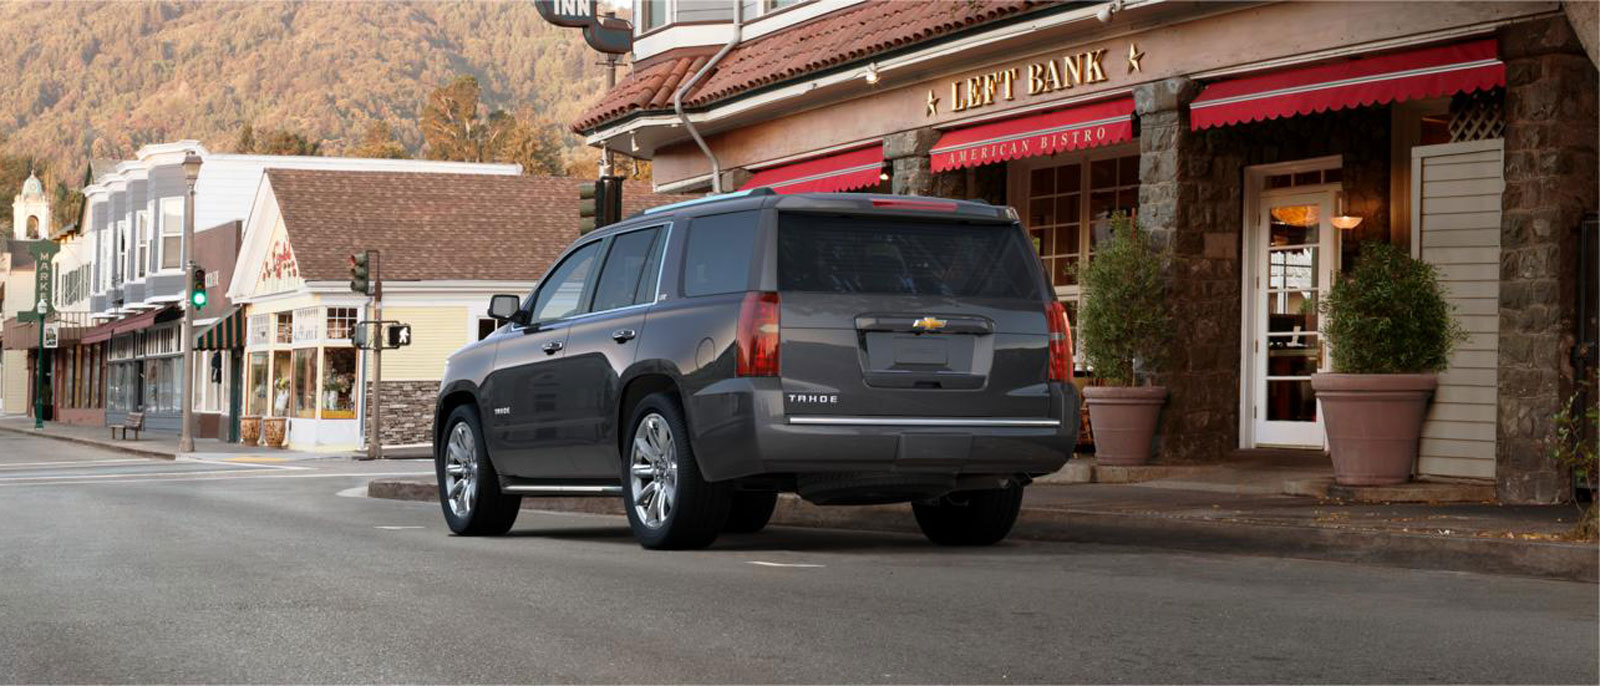 2016 chevrolet tahoe florence gill chevrolet. Cars Review. Best American Auto & Cars Review